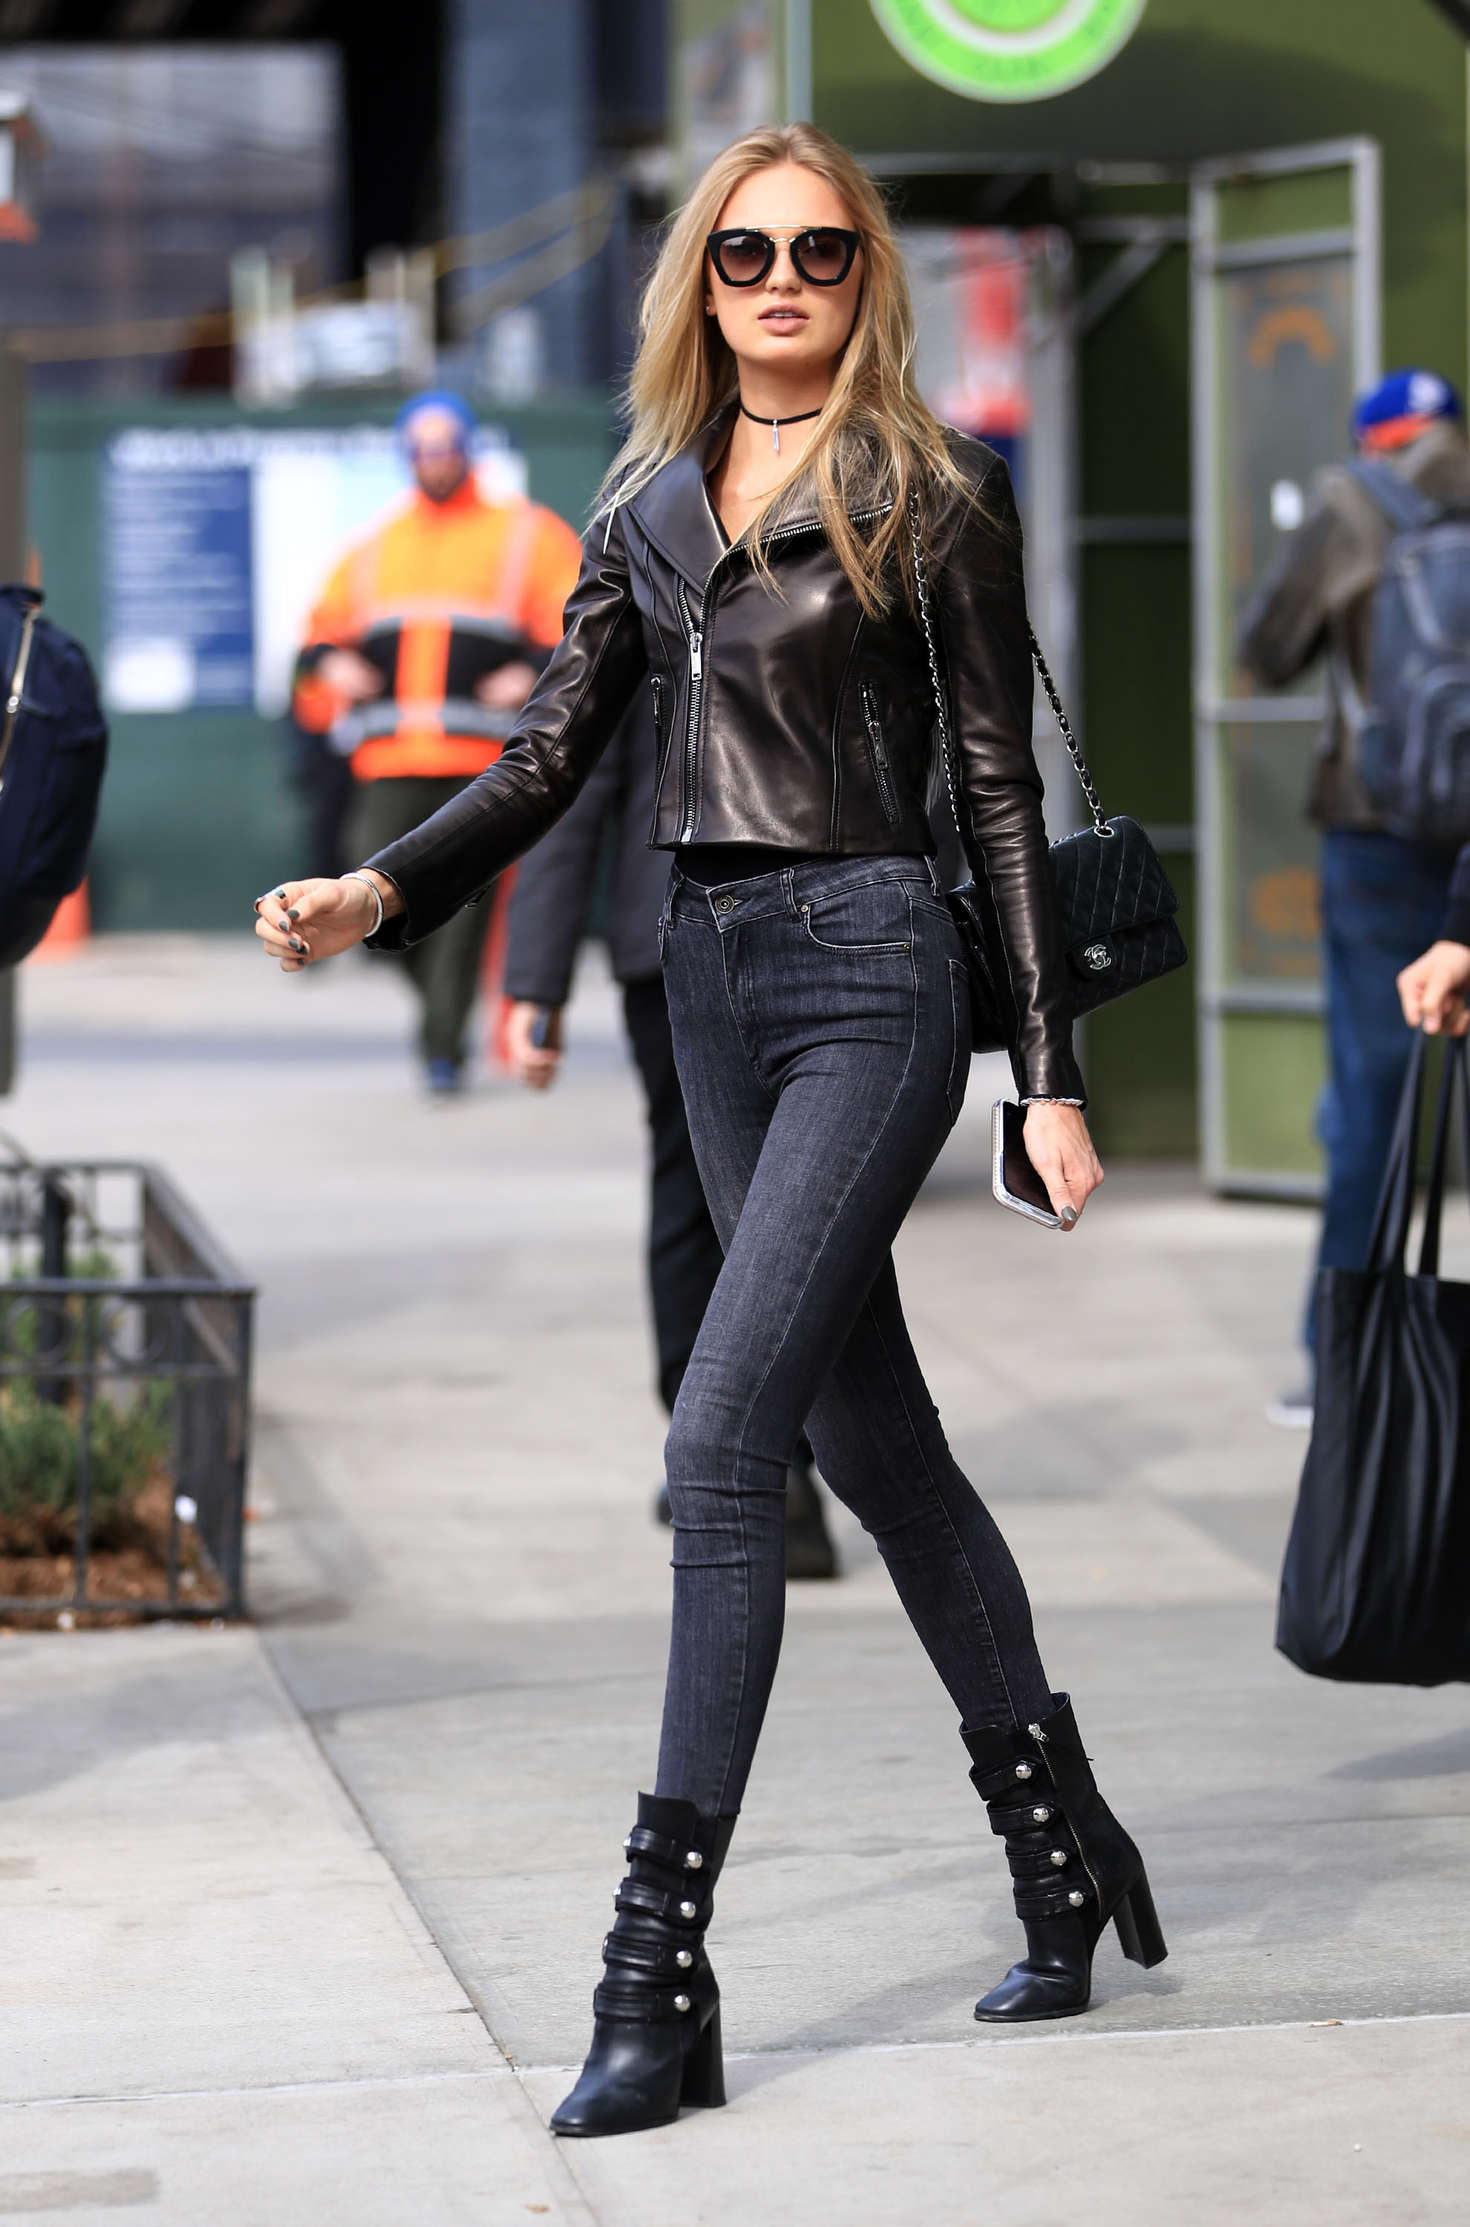 romee strijd i skinny jeans out in new york. Black Bedroom Furniture Sets. Home Design Ideas